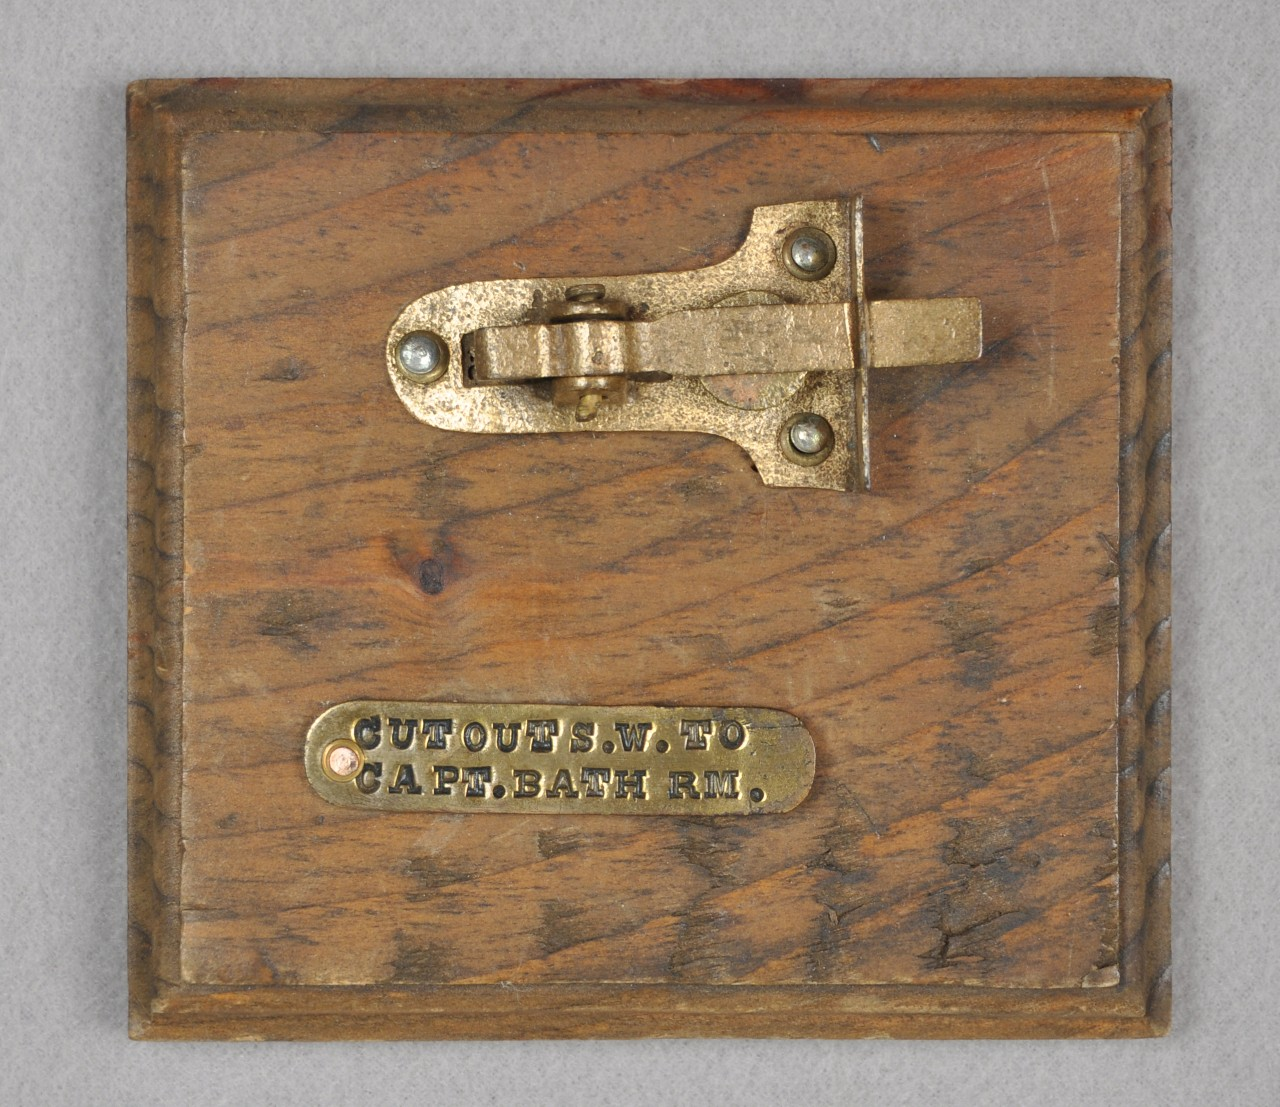 "Attached to a square wooden piece of wood is a brass cabinet latch and below the latch is an oblong brass tag with the woods ""Cut Out S.W. To Capt. Bath Rm."" stamped on it."